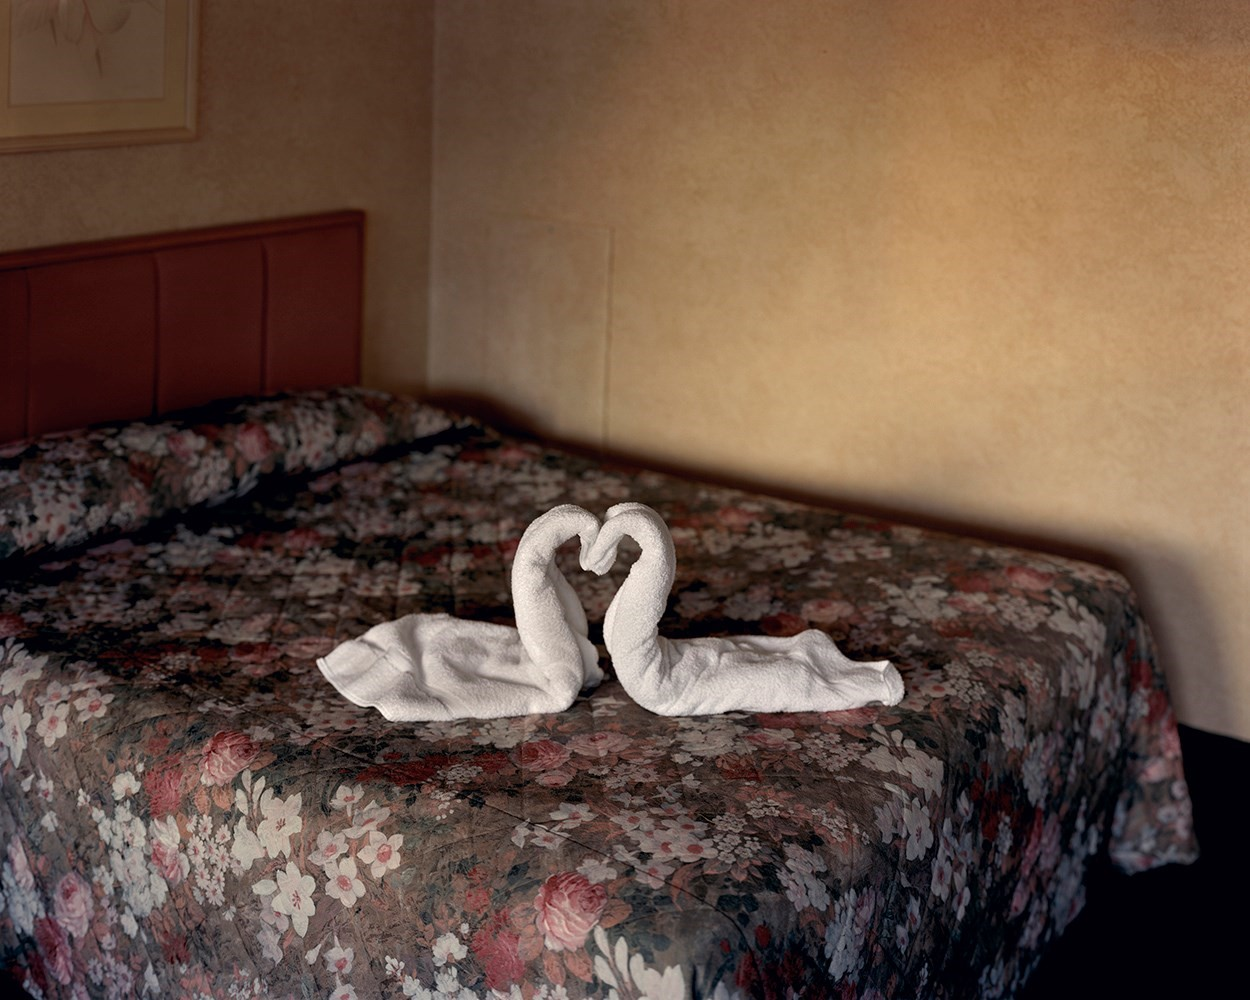 Two Towels, 2004, from Niagara © Alec Soth